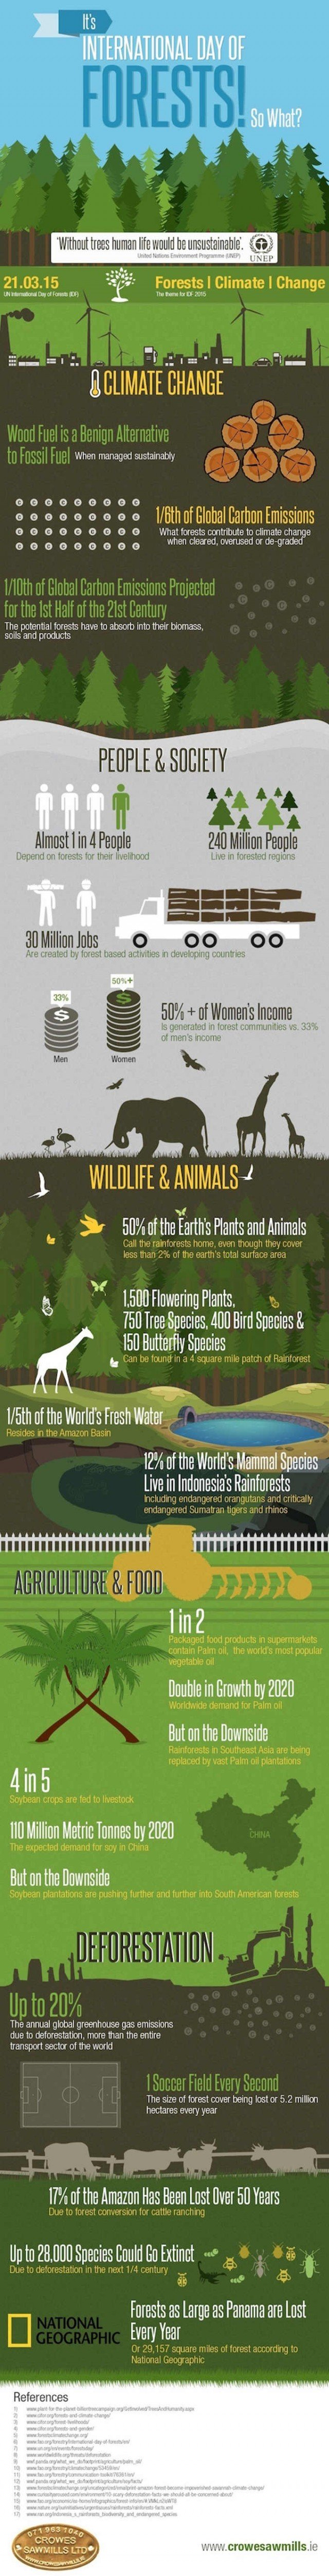 Important Forest facts - infographic